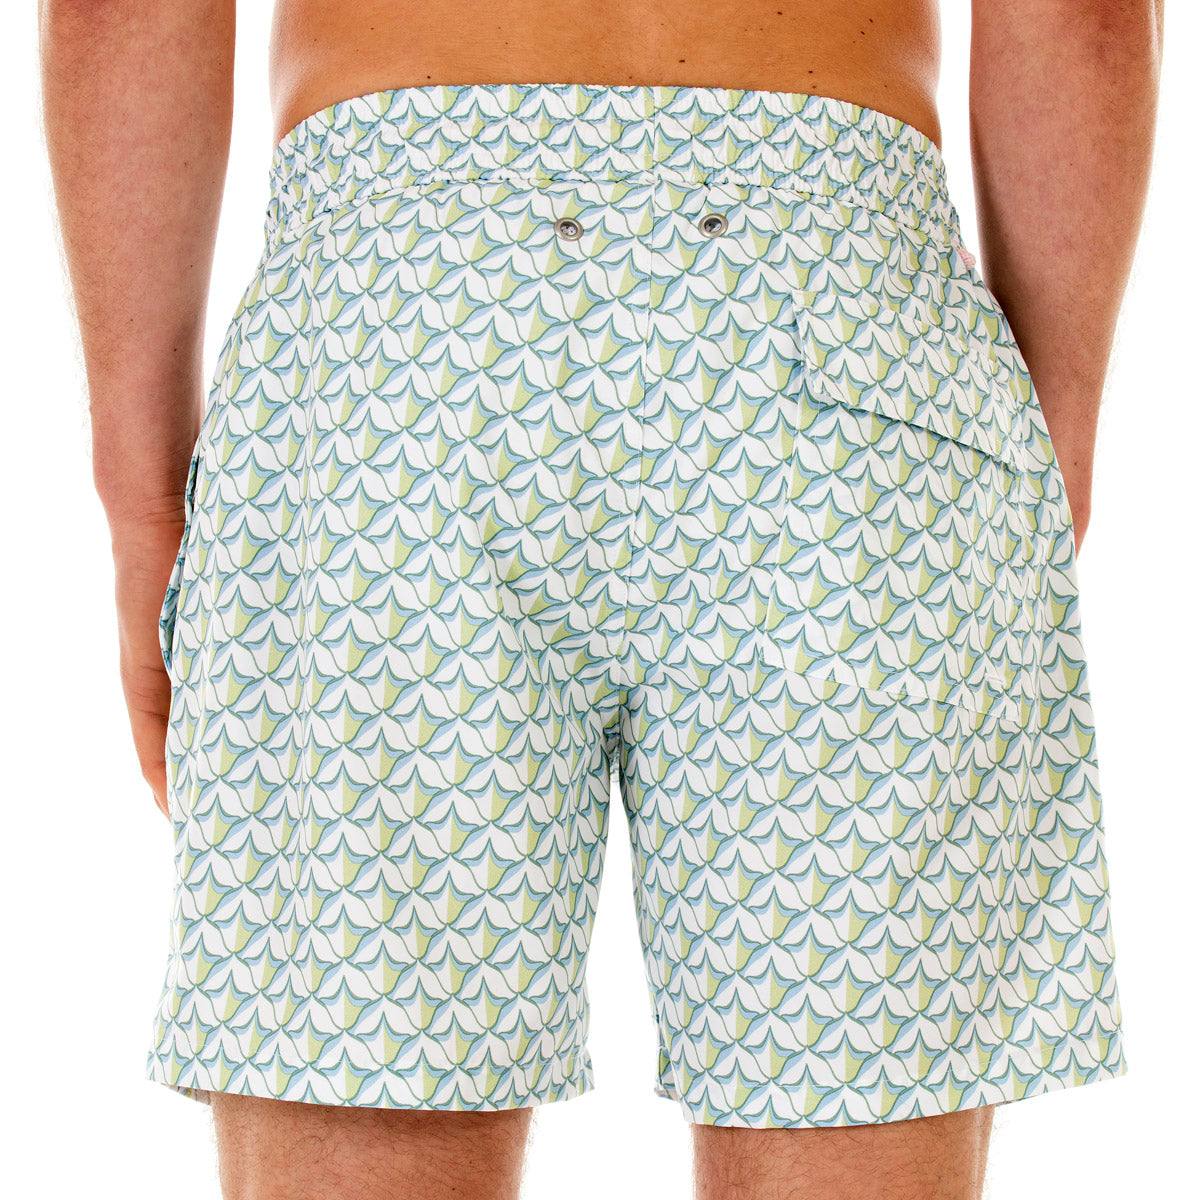 Mens swim trunks : PINEAPPLE PRICKLES - OLIVE back